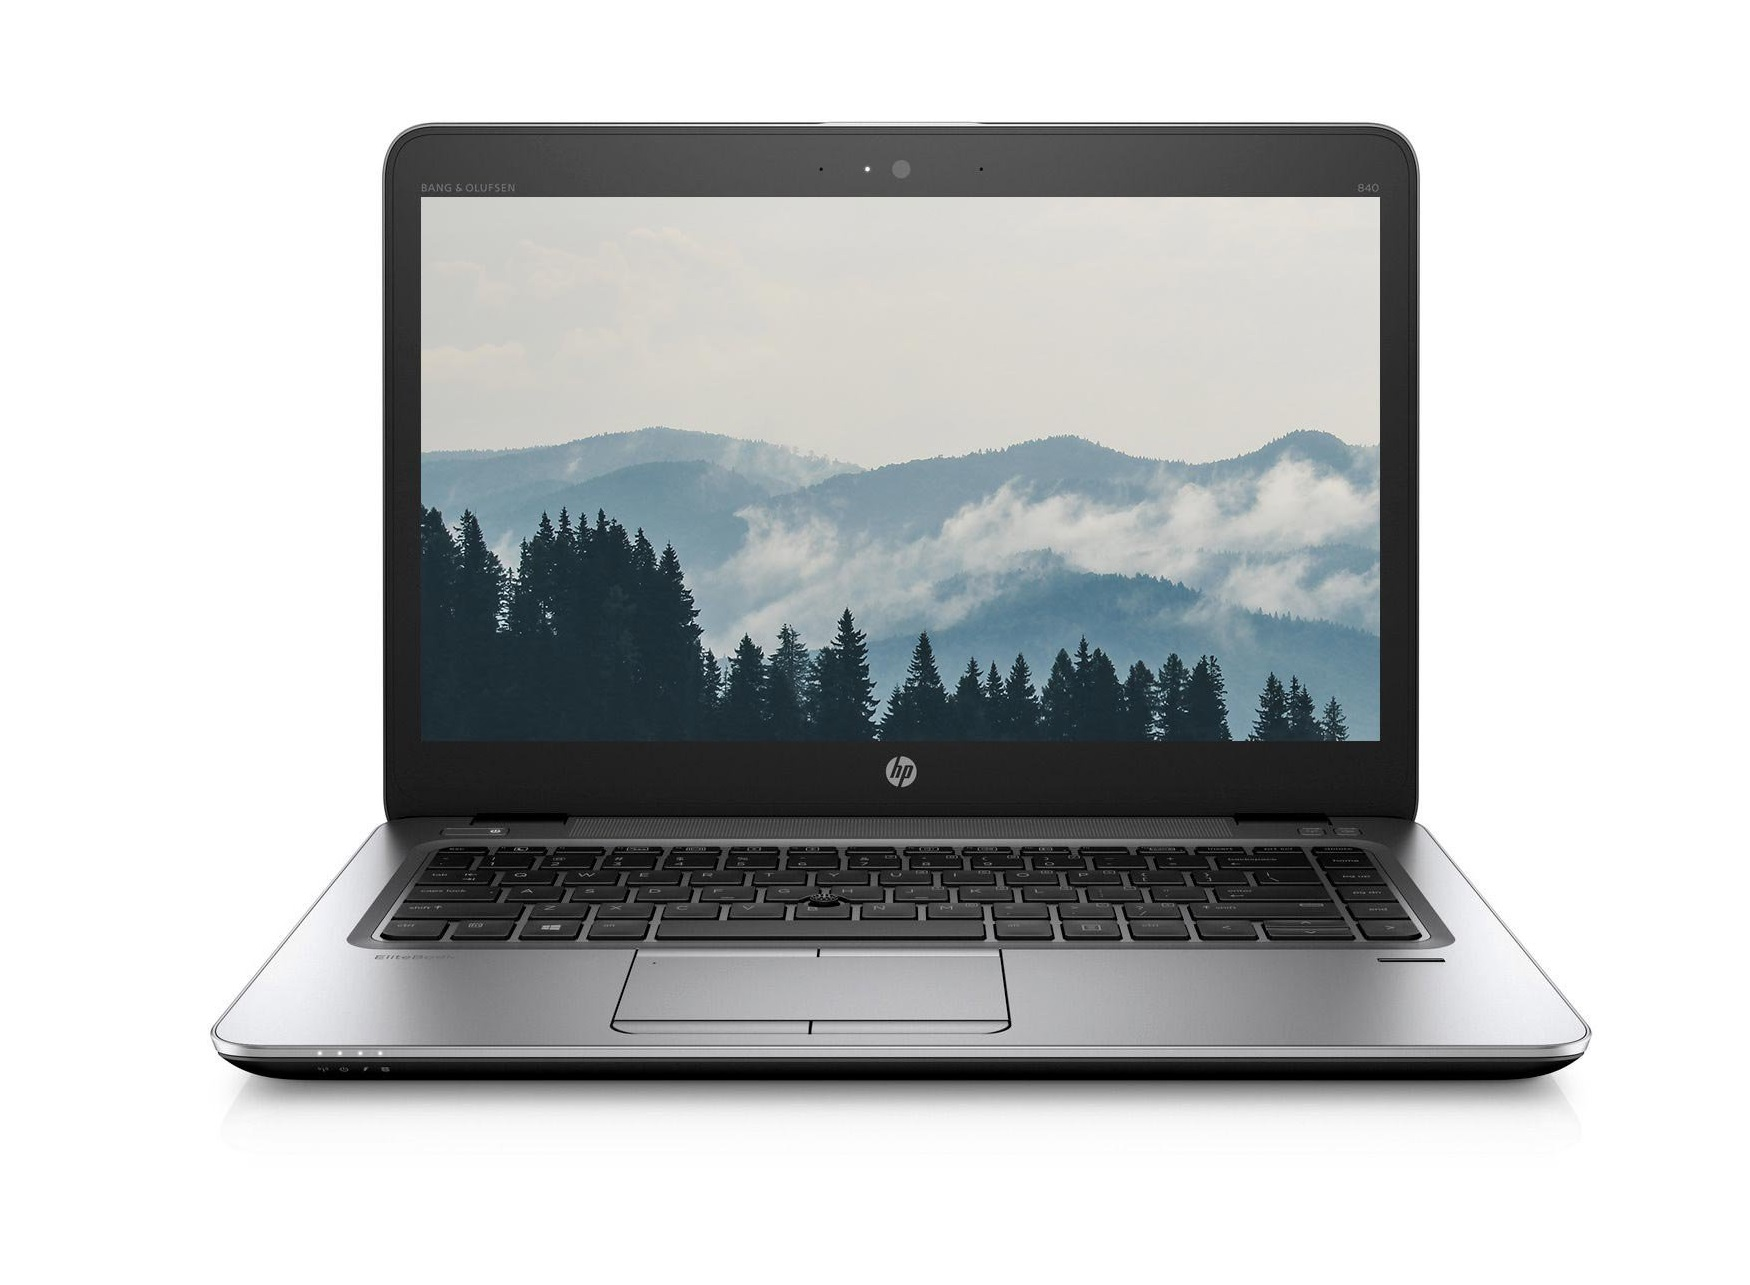 devicesa-refurbished-hp-elitebook-840g3-Laptop